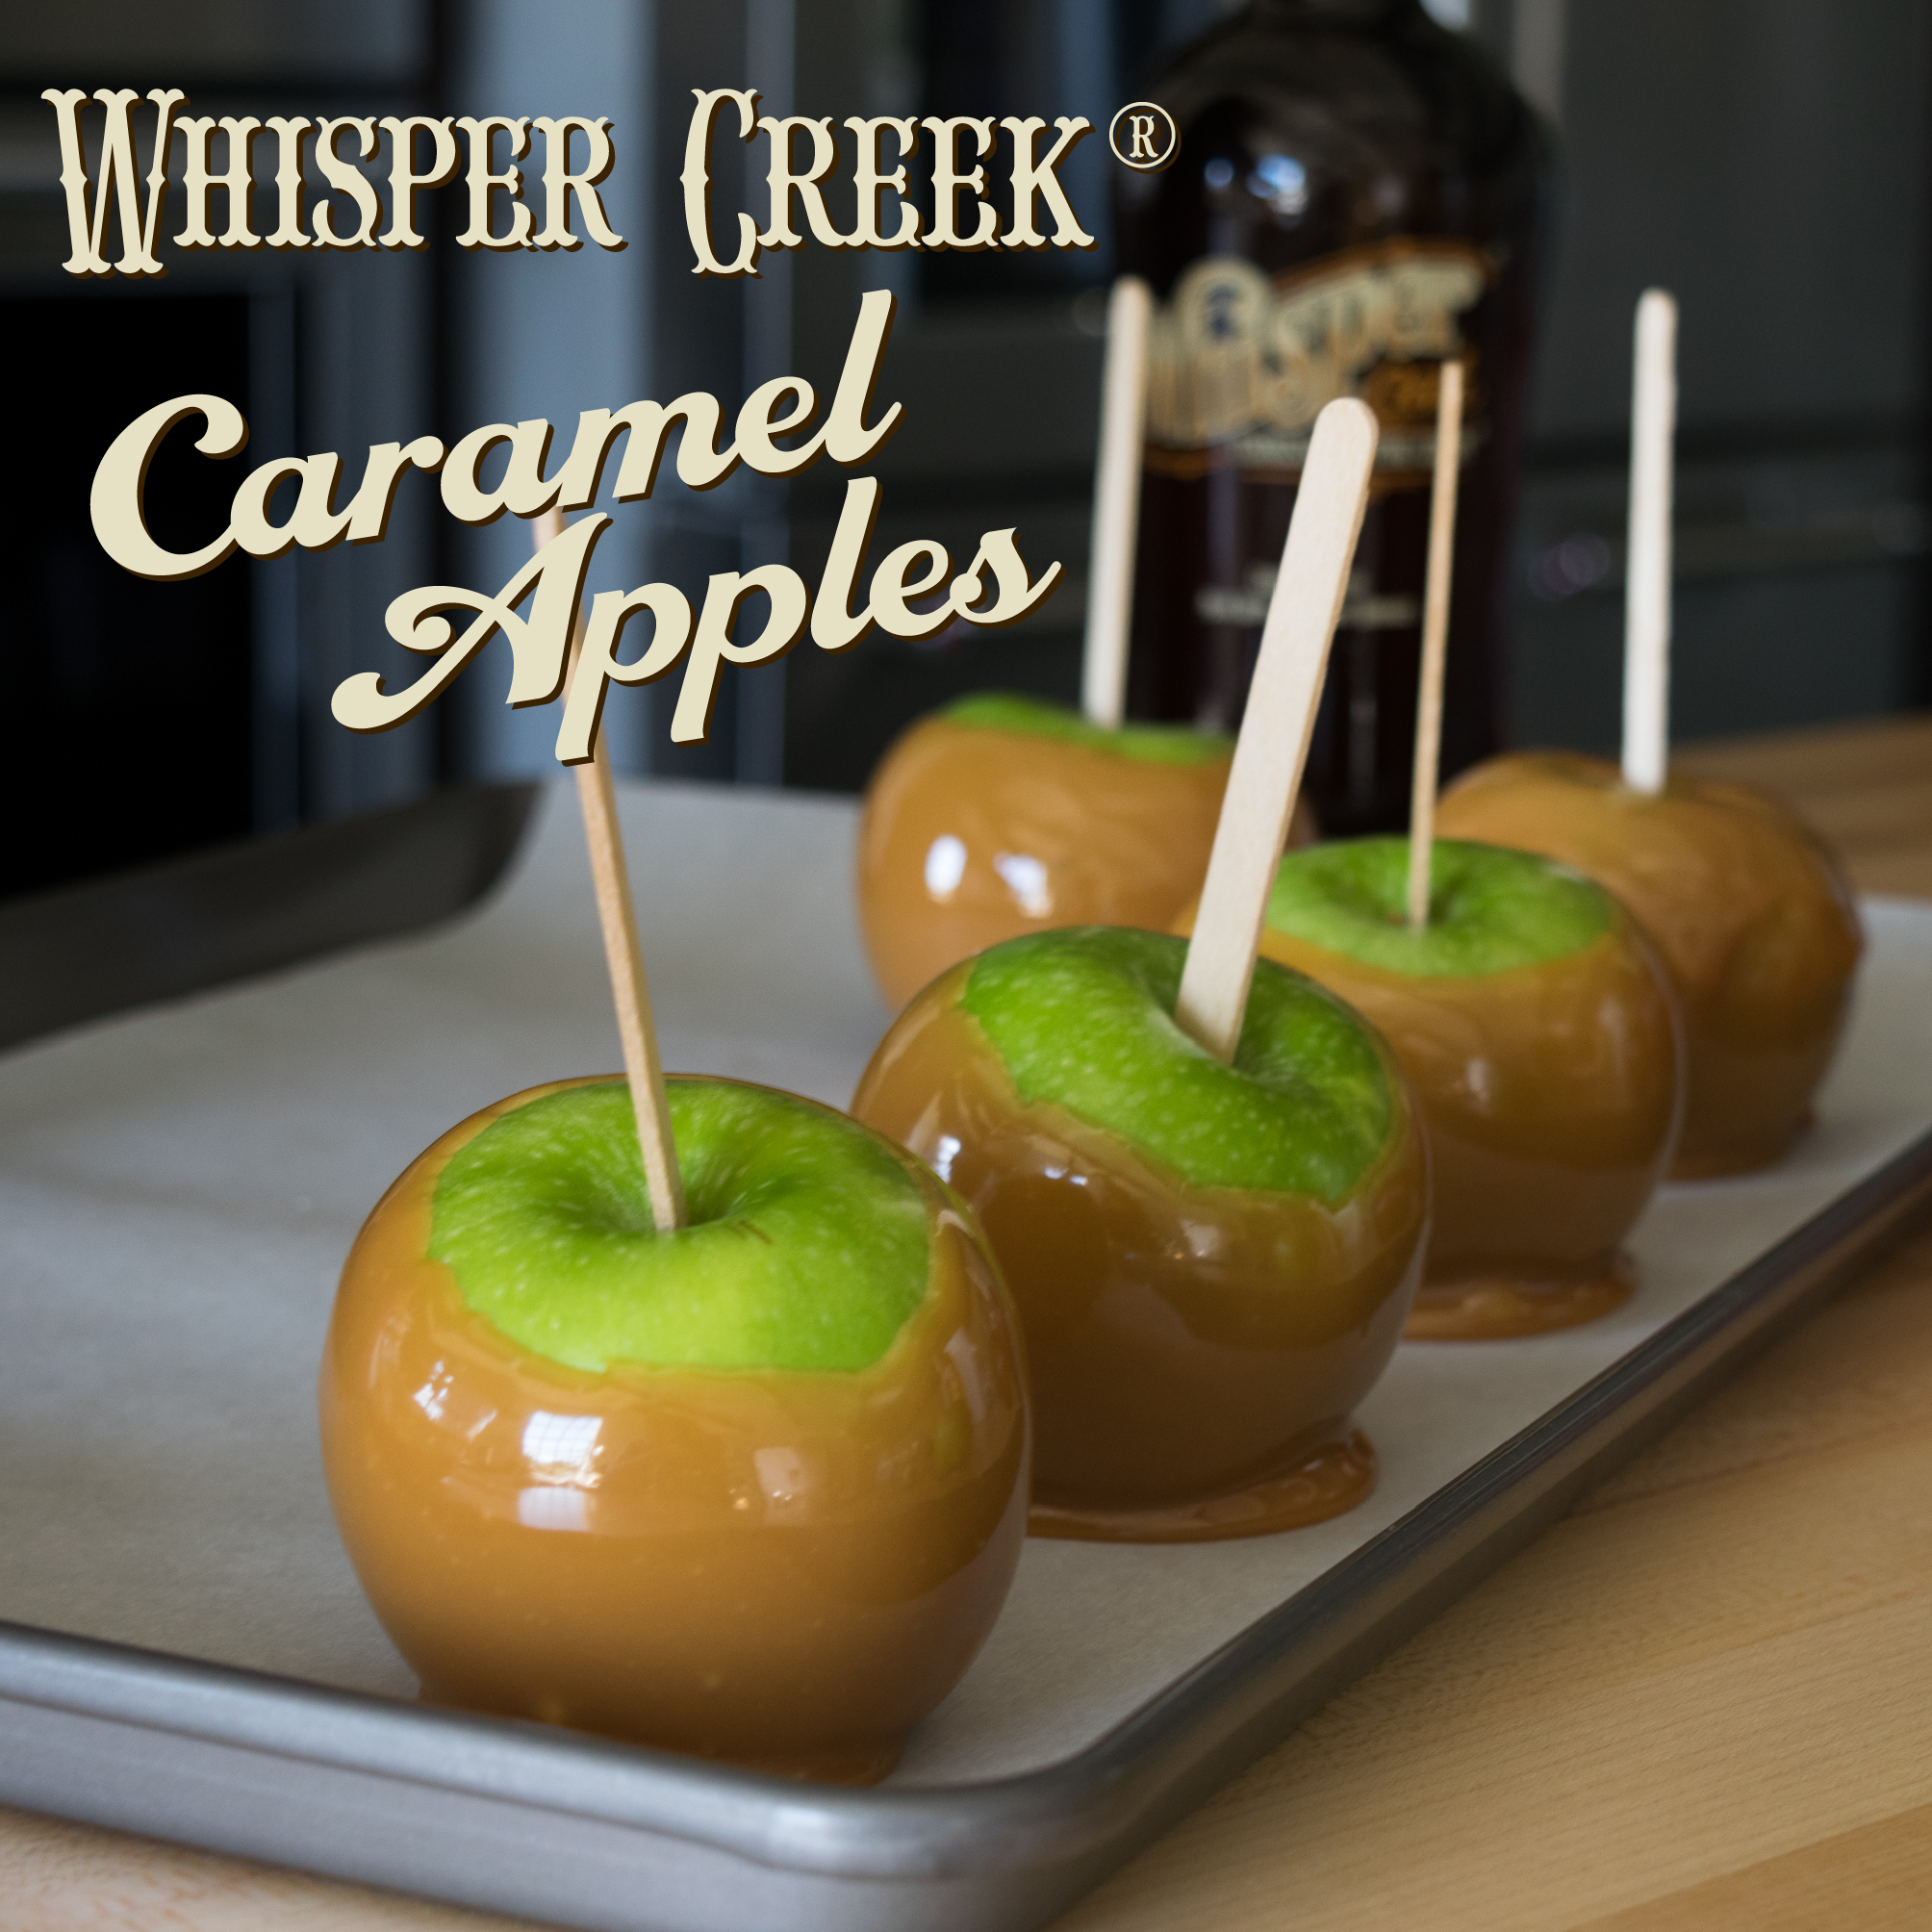 Whisper Creek Caramel Apples - Easy and Delicious!!